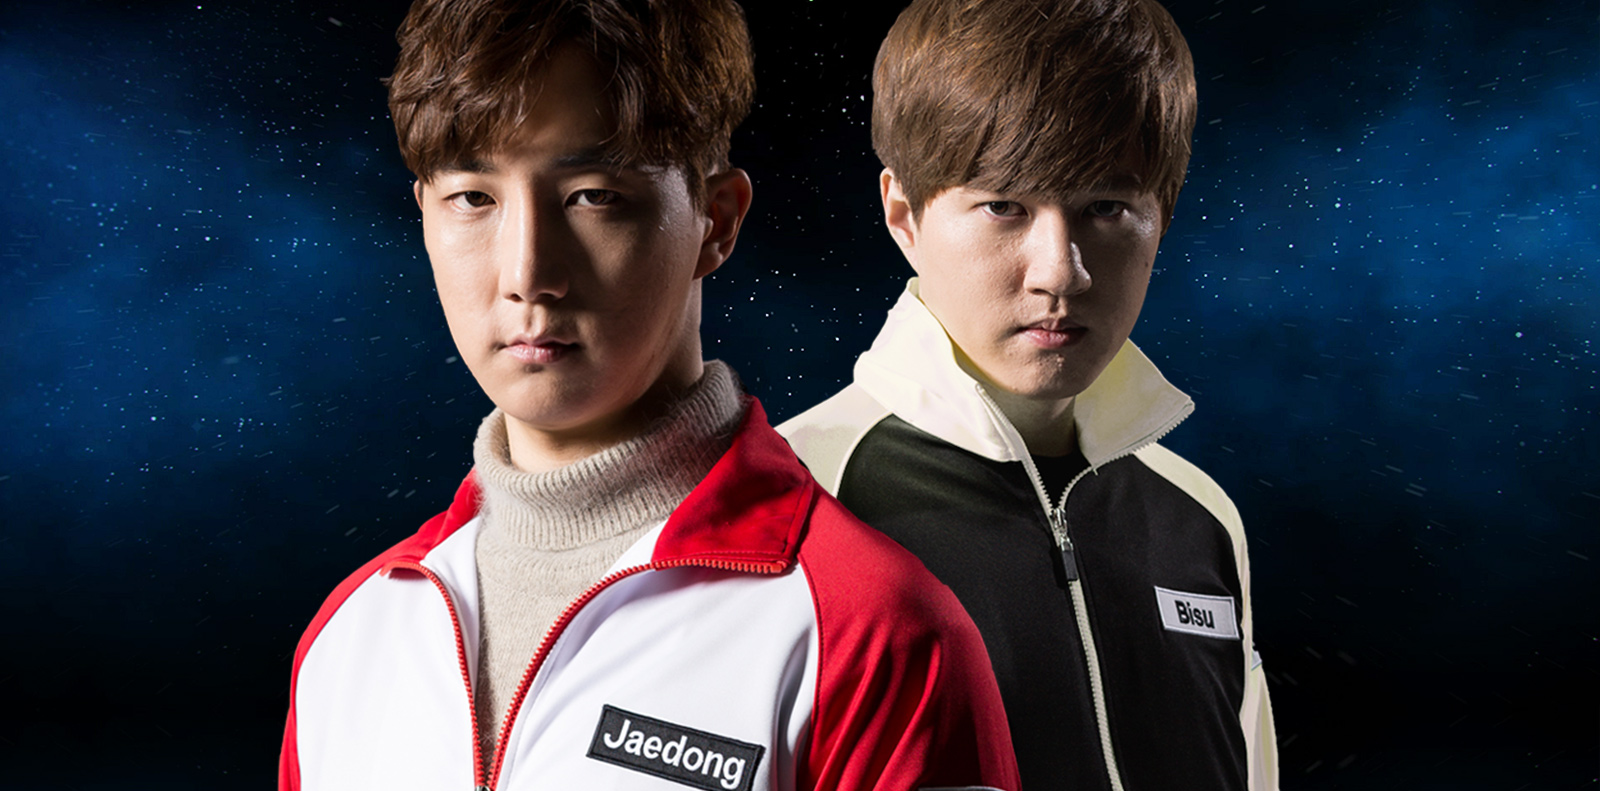 Jaedong and Bisu Face Off One Last Time